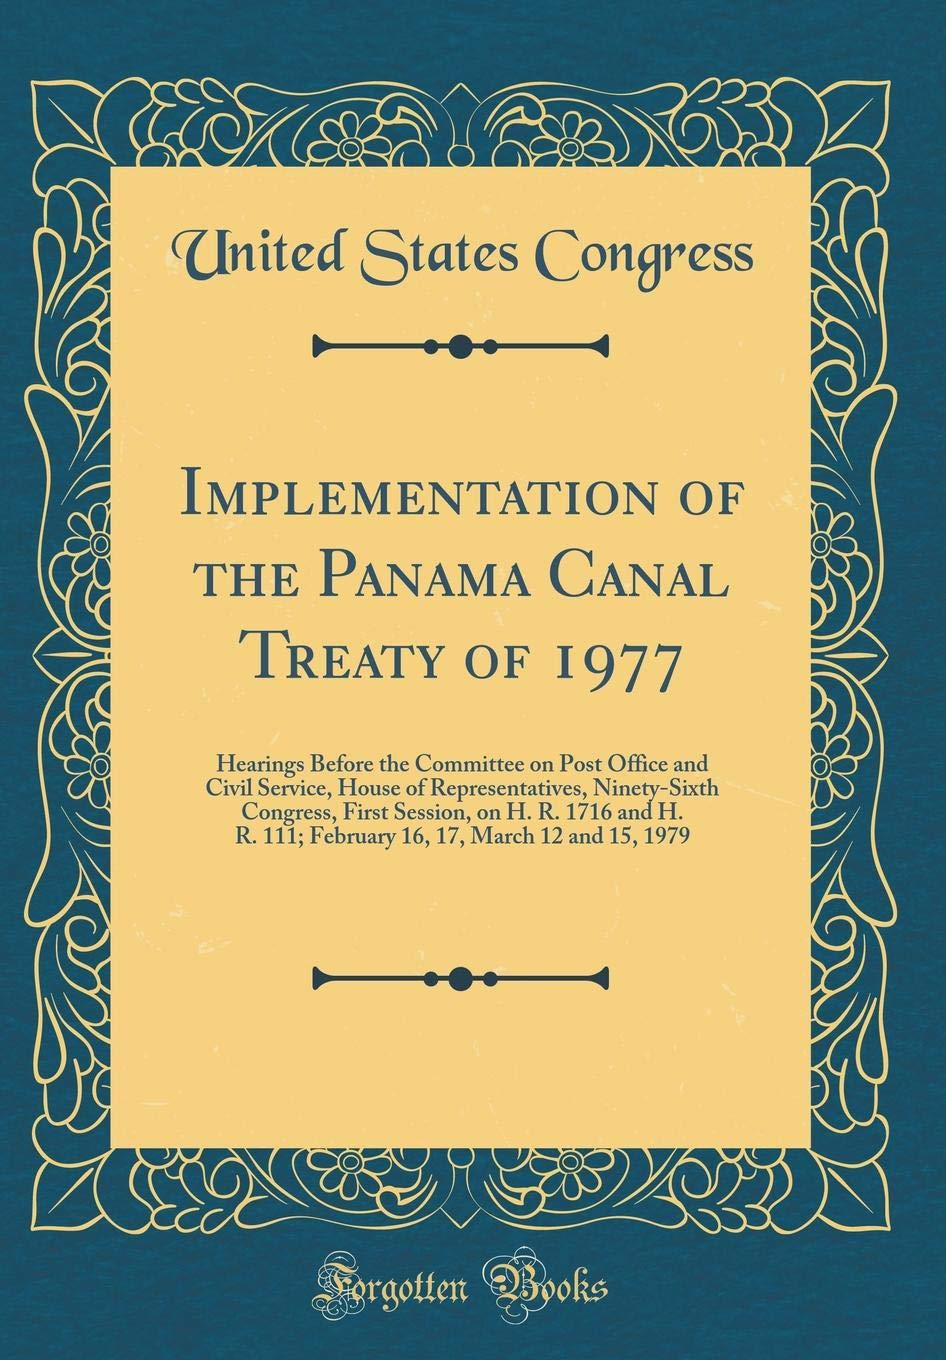 Implementation of the Panama Canal Treaty of 1977: Hearings Before the Committee on Post Office and Civil Service, House of Representatives, ... 111; February 16, 17, March 12 and 15, 1979 pdf